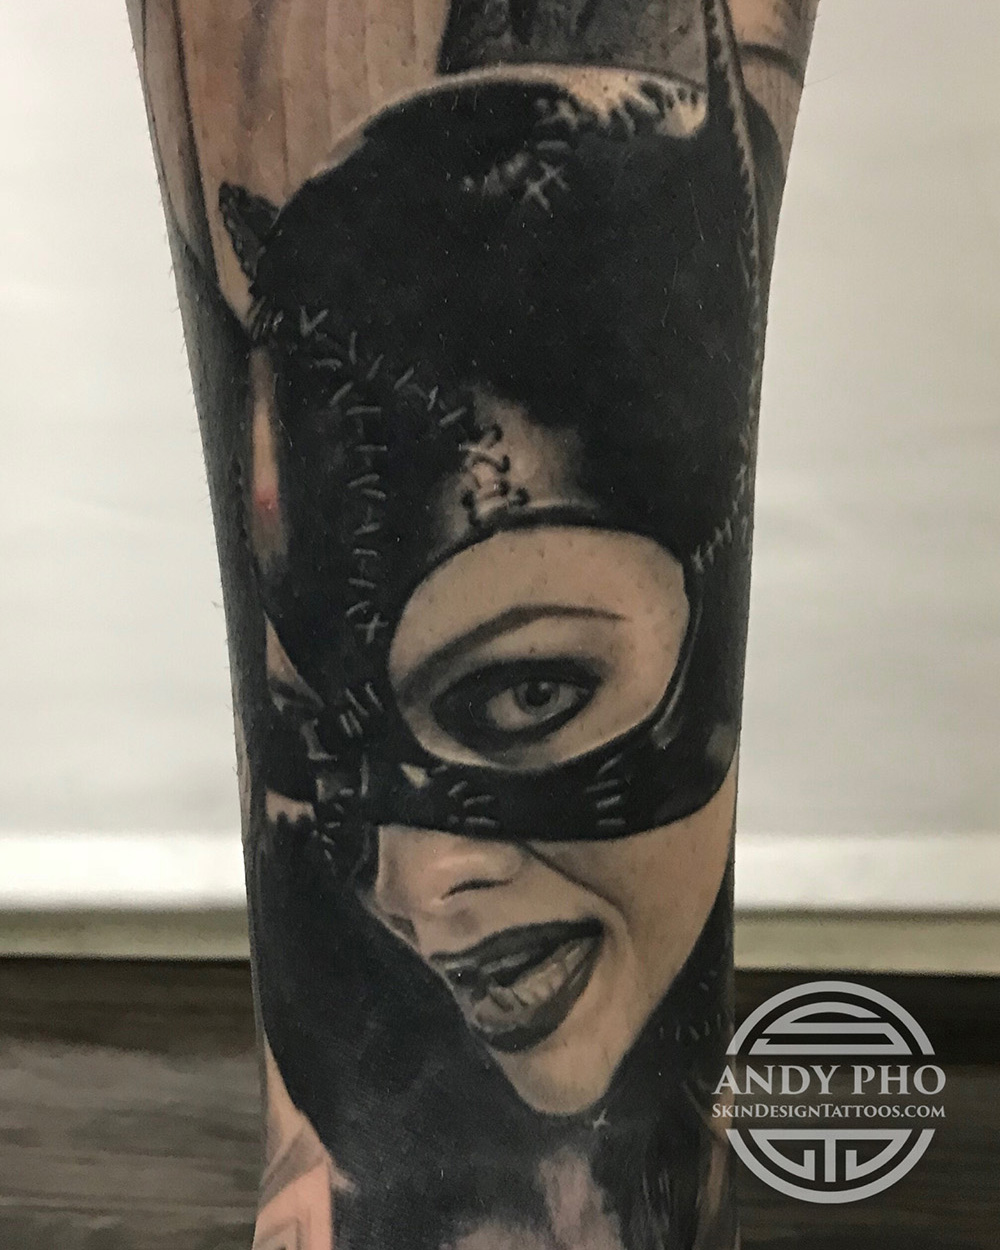 Andy Pho Catwoman tattoo.JPG